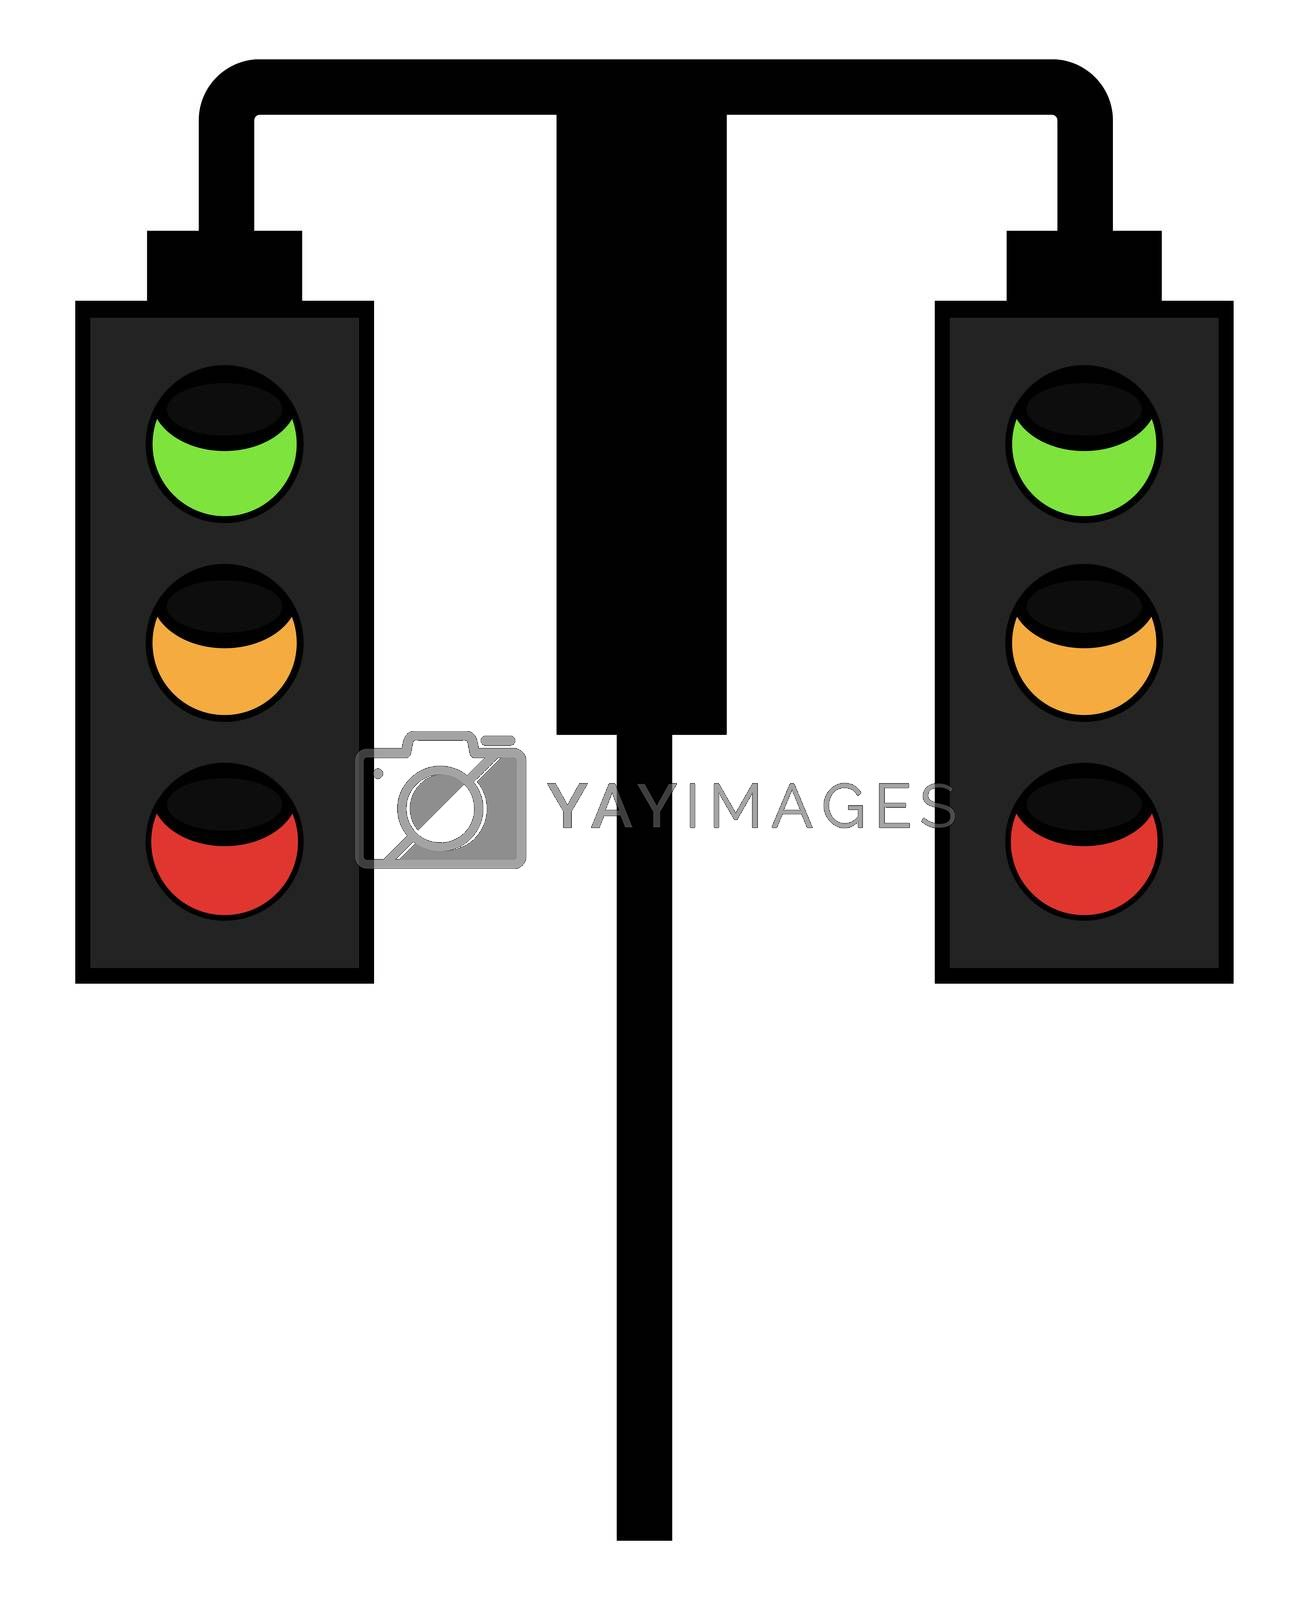 Hanging traffic light, illustration, vector on white background